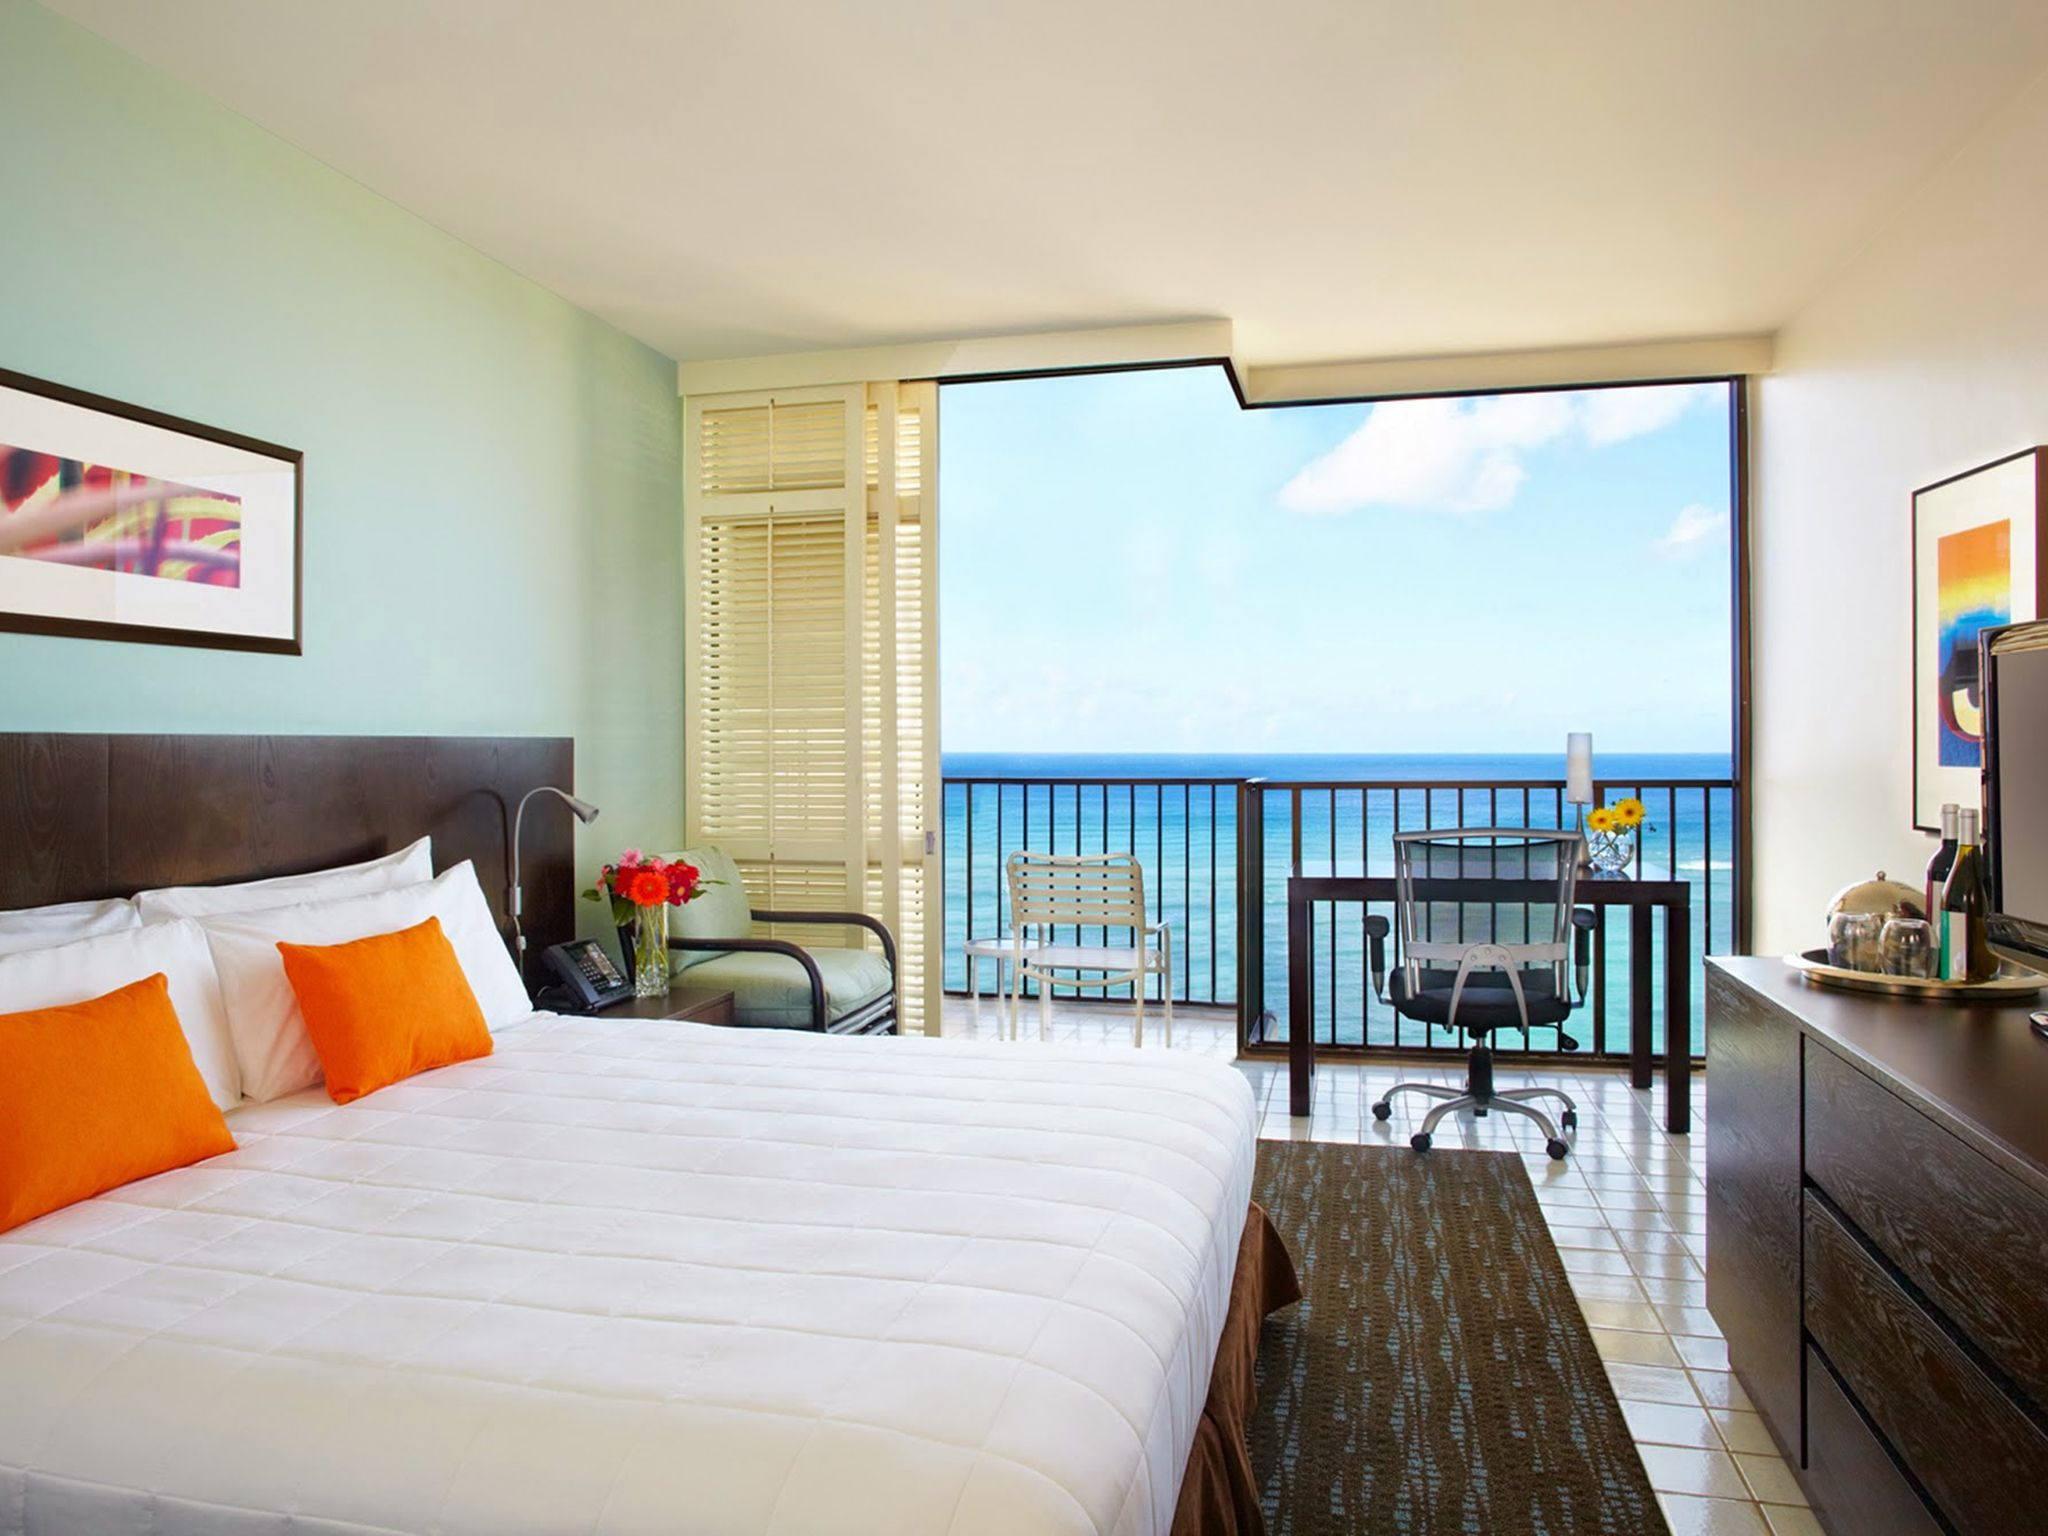 The Best Family Friendly Resorts In Hawaii Hawaii Resorts Family Friendly Resorts Hawaii Hotels